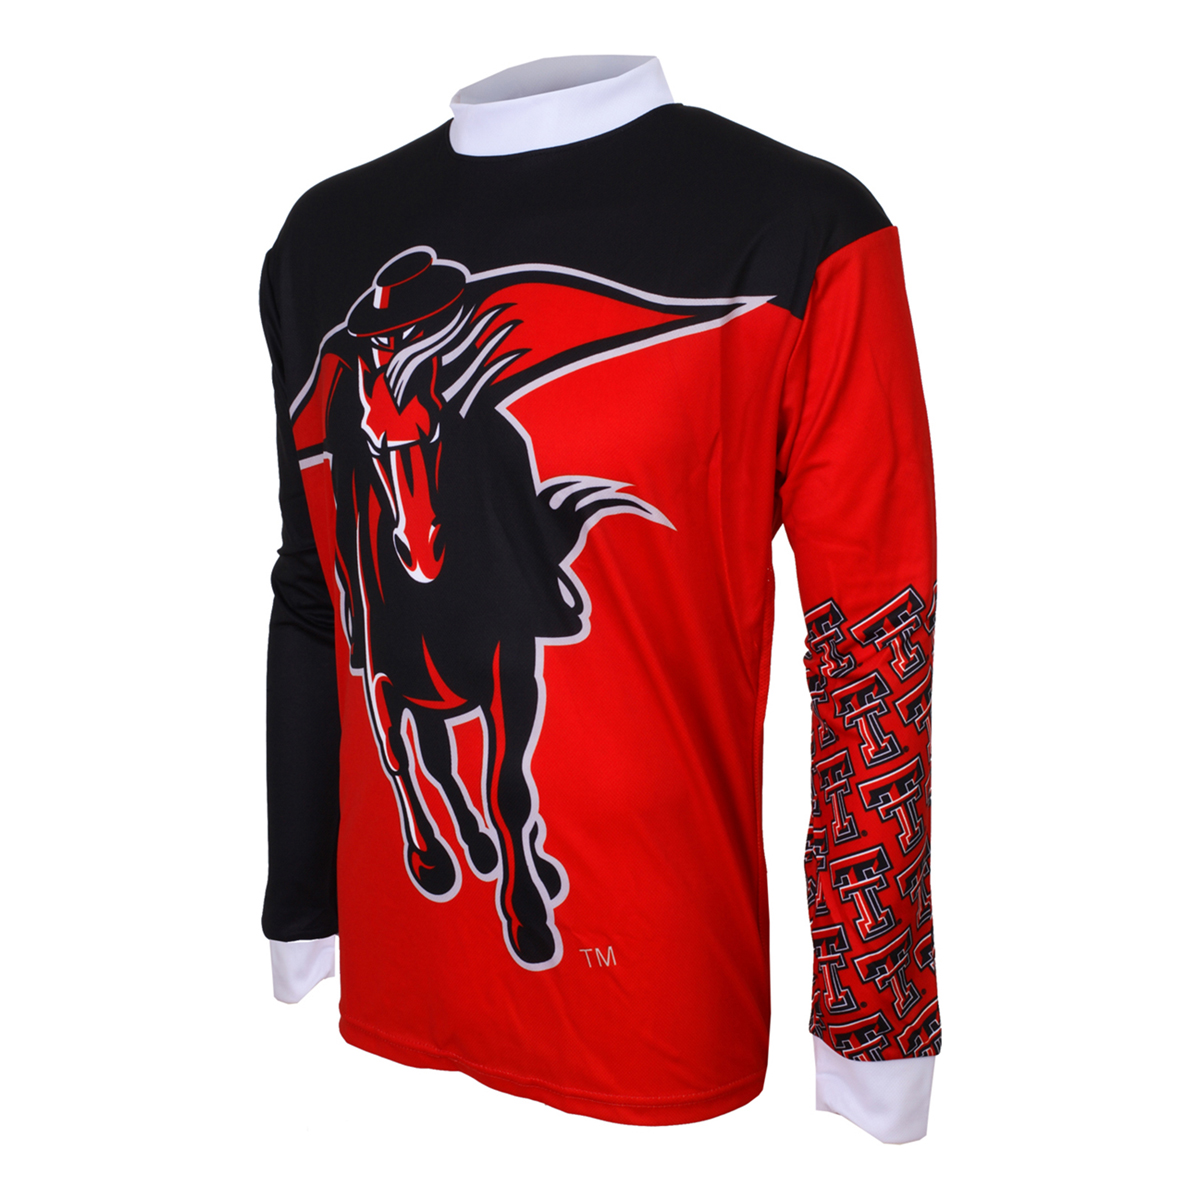 Adrenaline Promotions Texas Tech University Red Raider Long Sleeve Mountain Bike Jersey